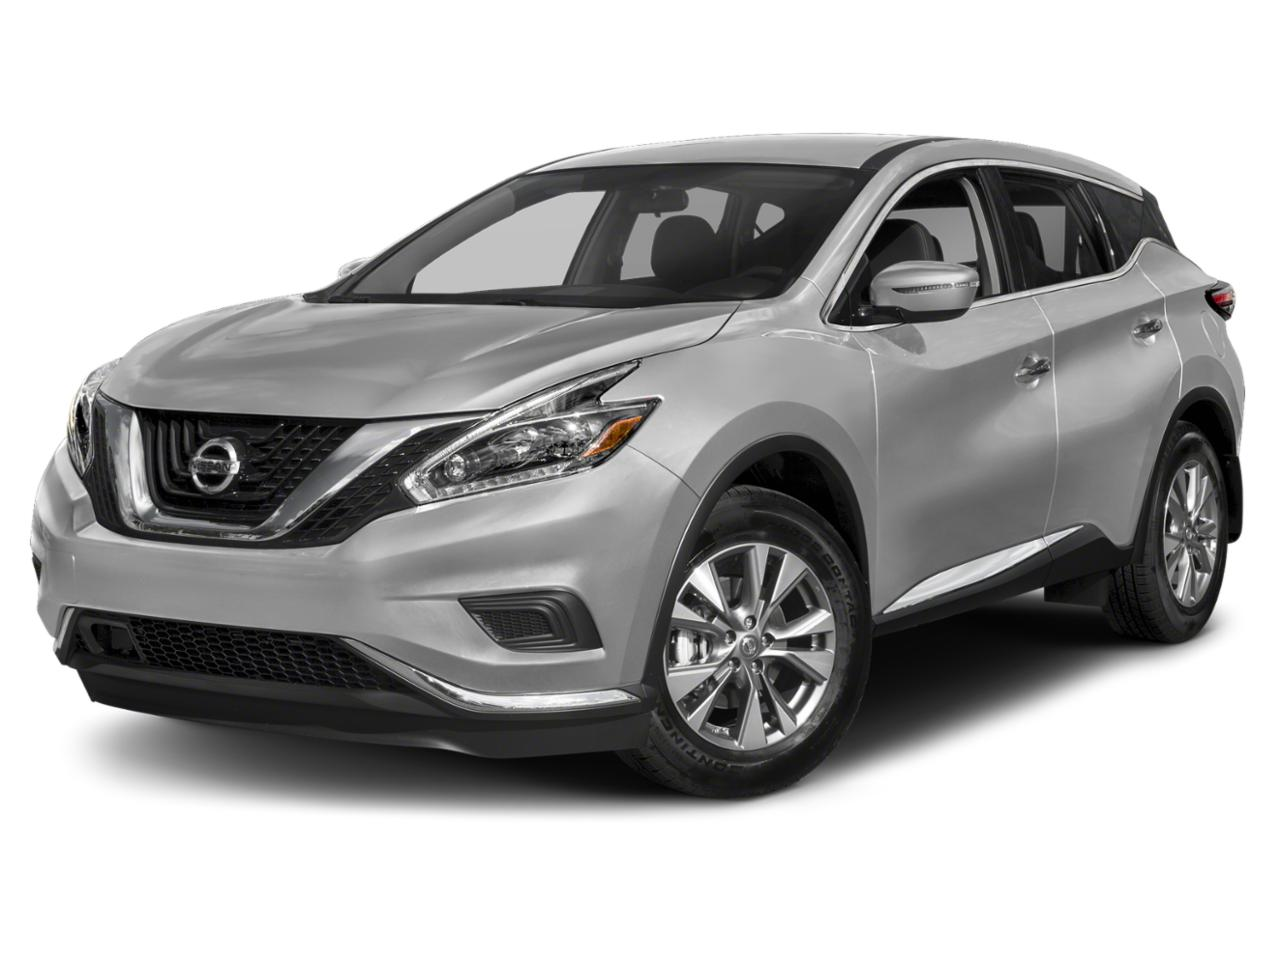 2018 Nissan Murano Vehicle Photo in Smyrna, GA 30080